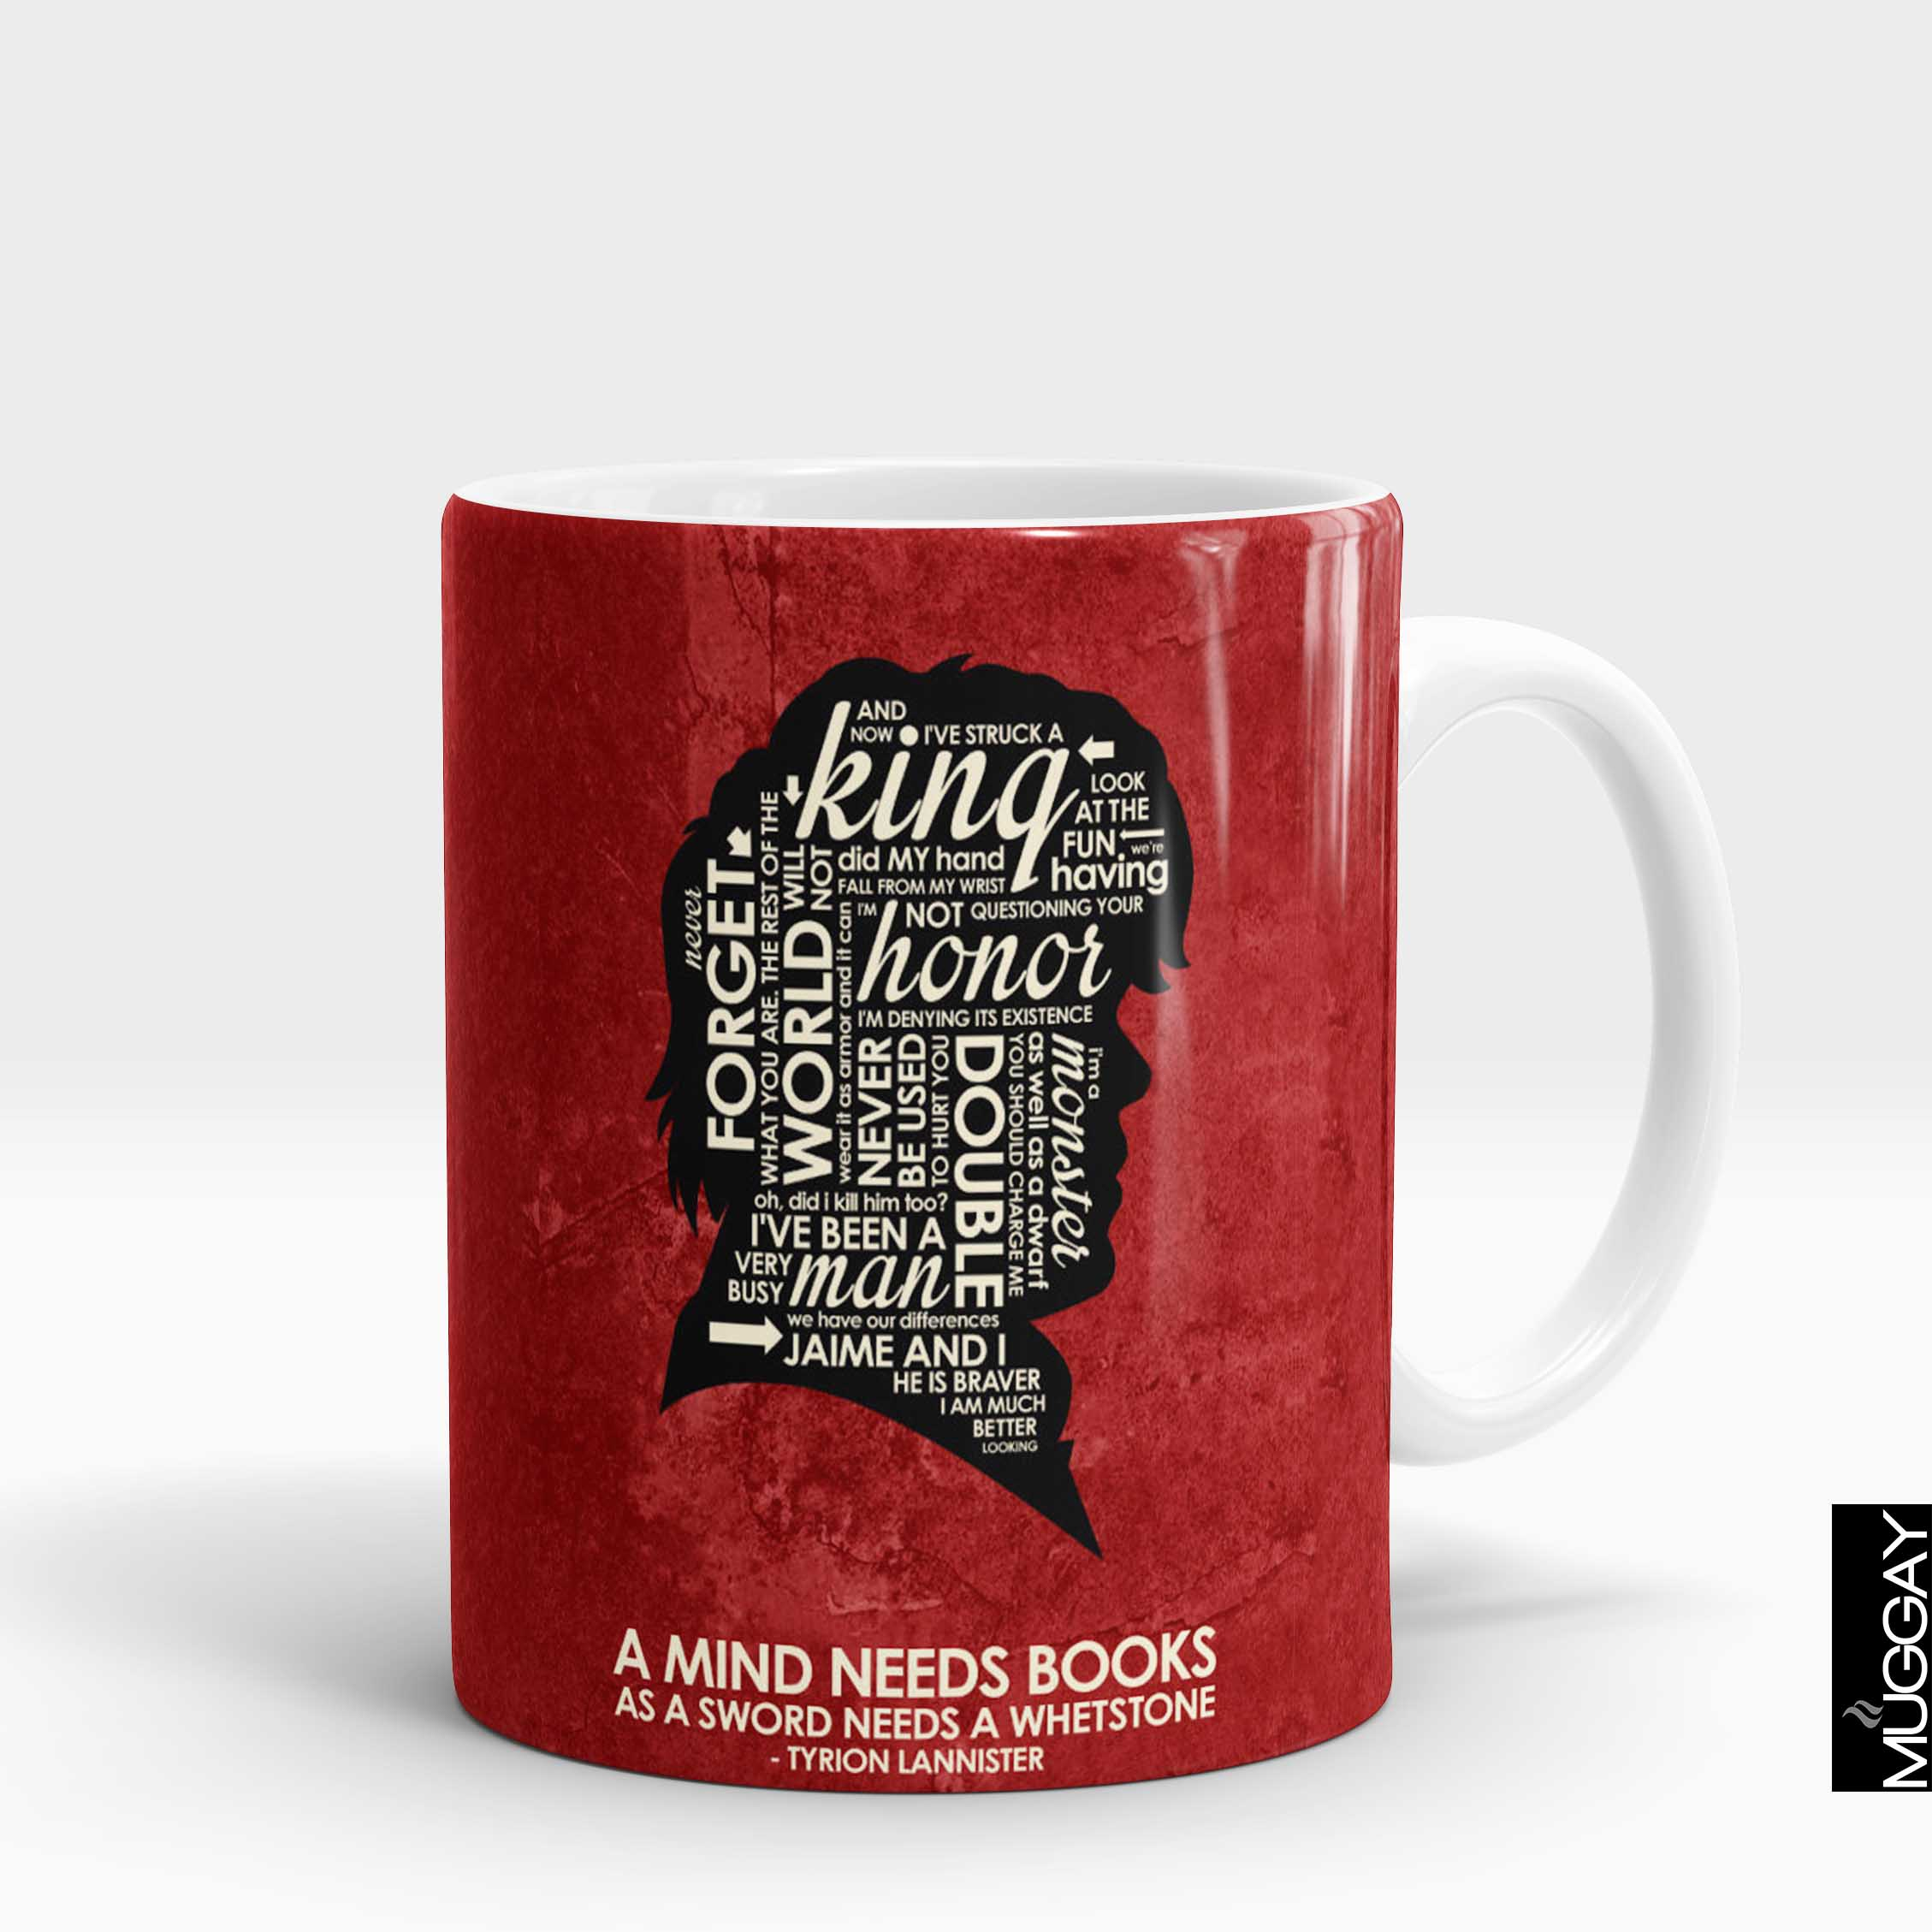 Game of thrones mugs -15